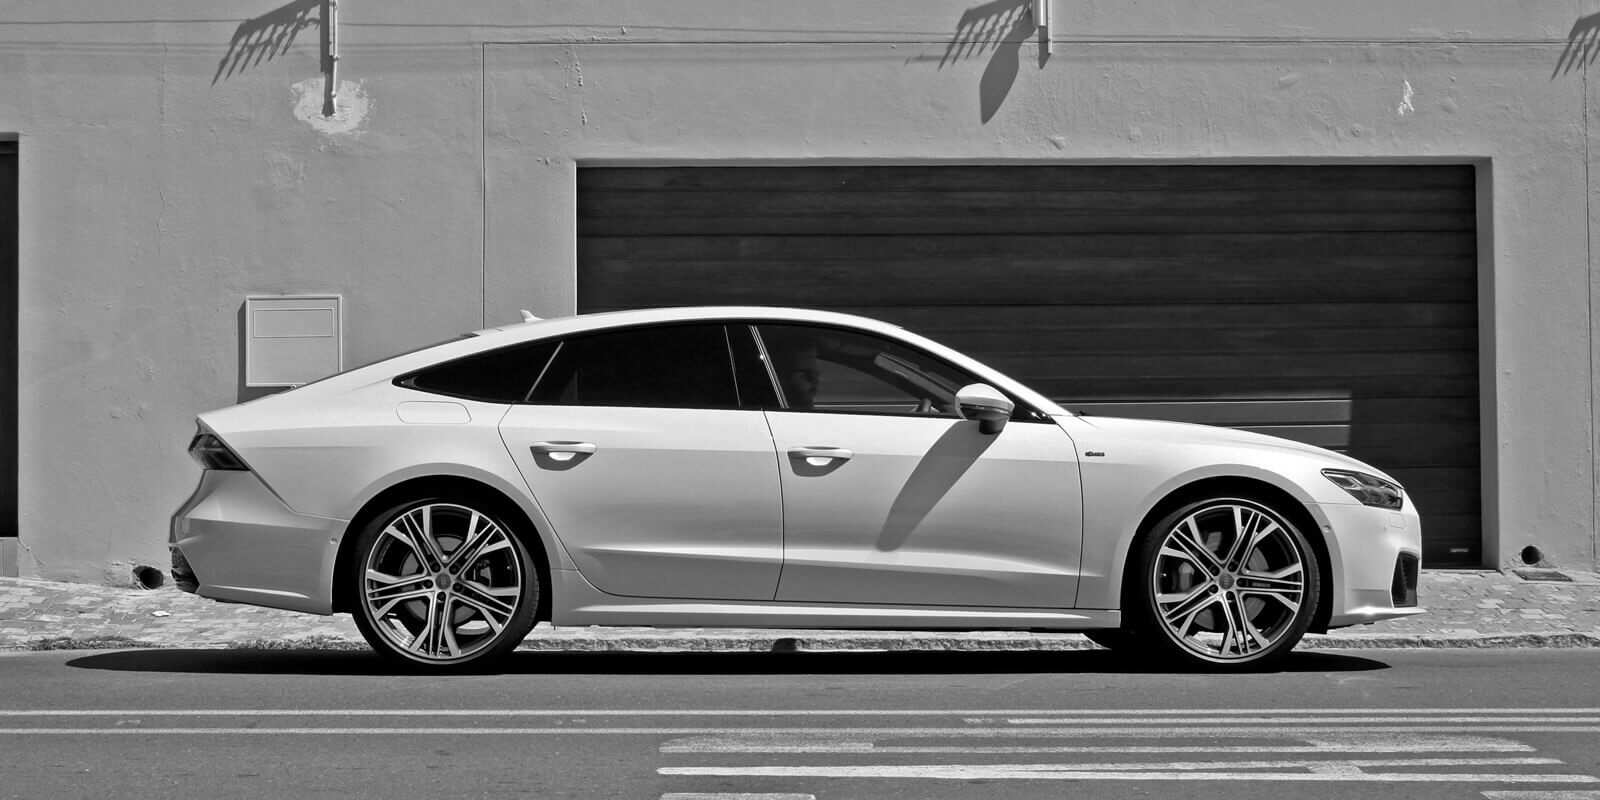 78 All New 2020 Audi A7 Colors Spy Shoot with 2020 Audi A7 Colors